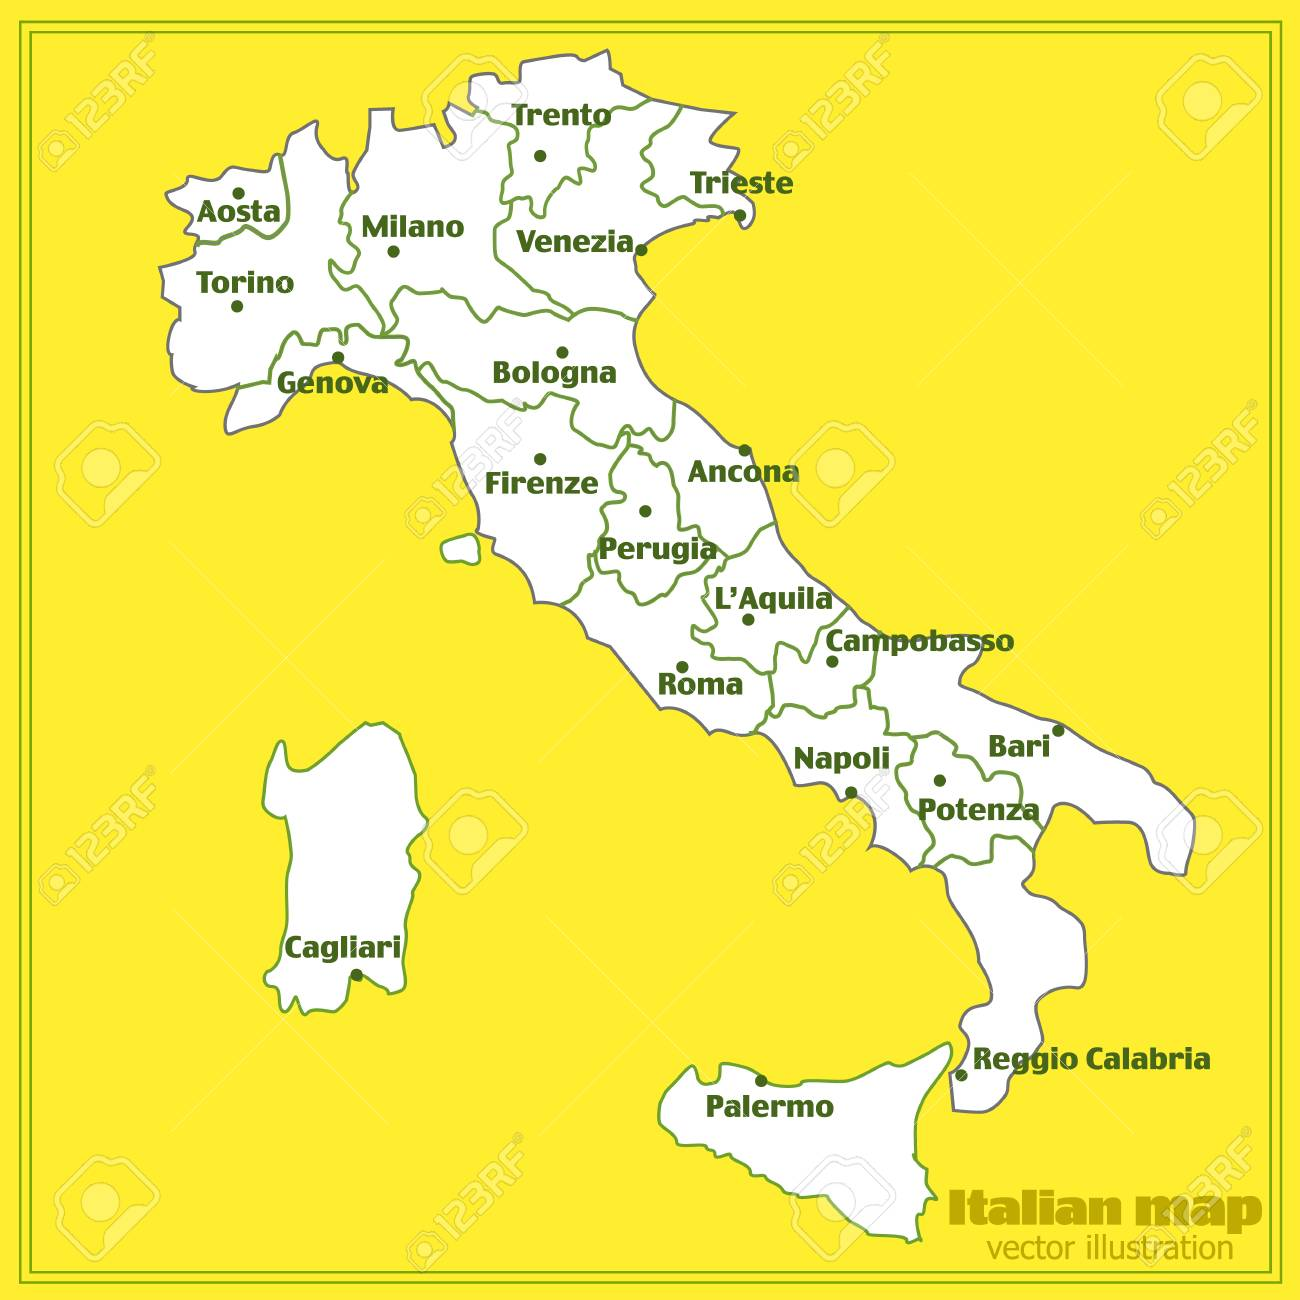 Map Of Italy Cities And Regions.Map Of Italy With Red Background Italy Map With Italian Big